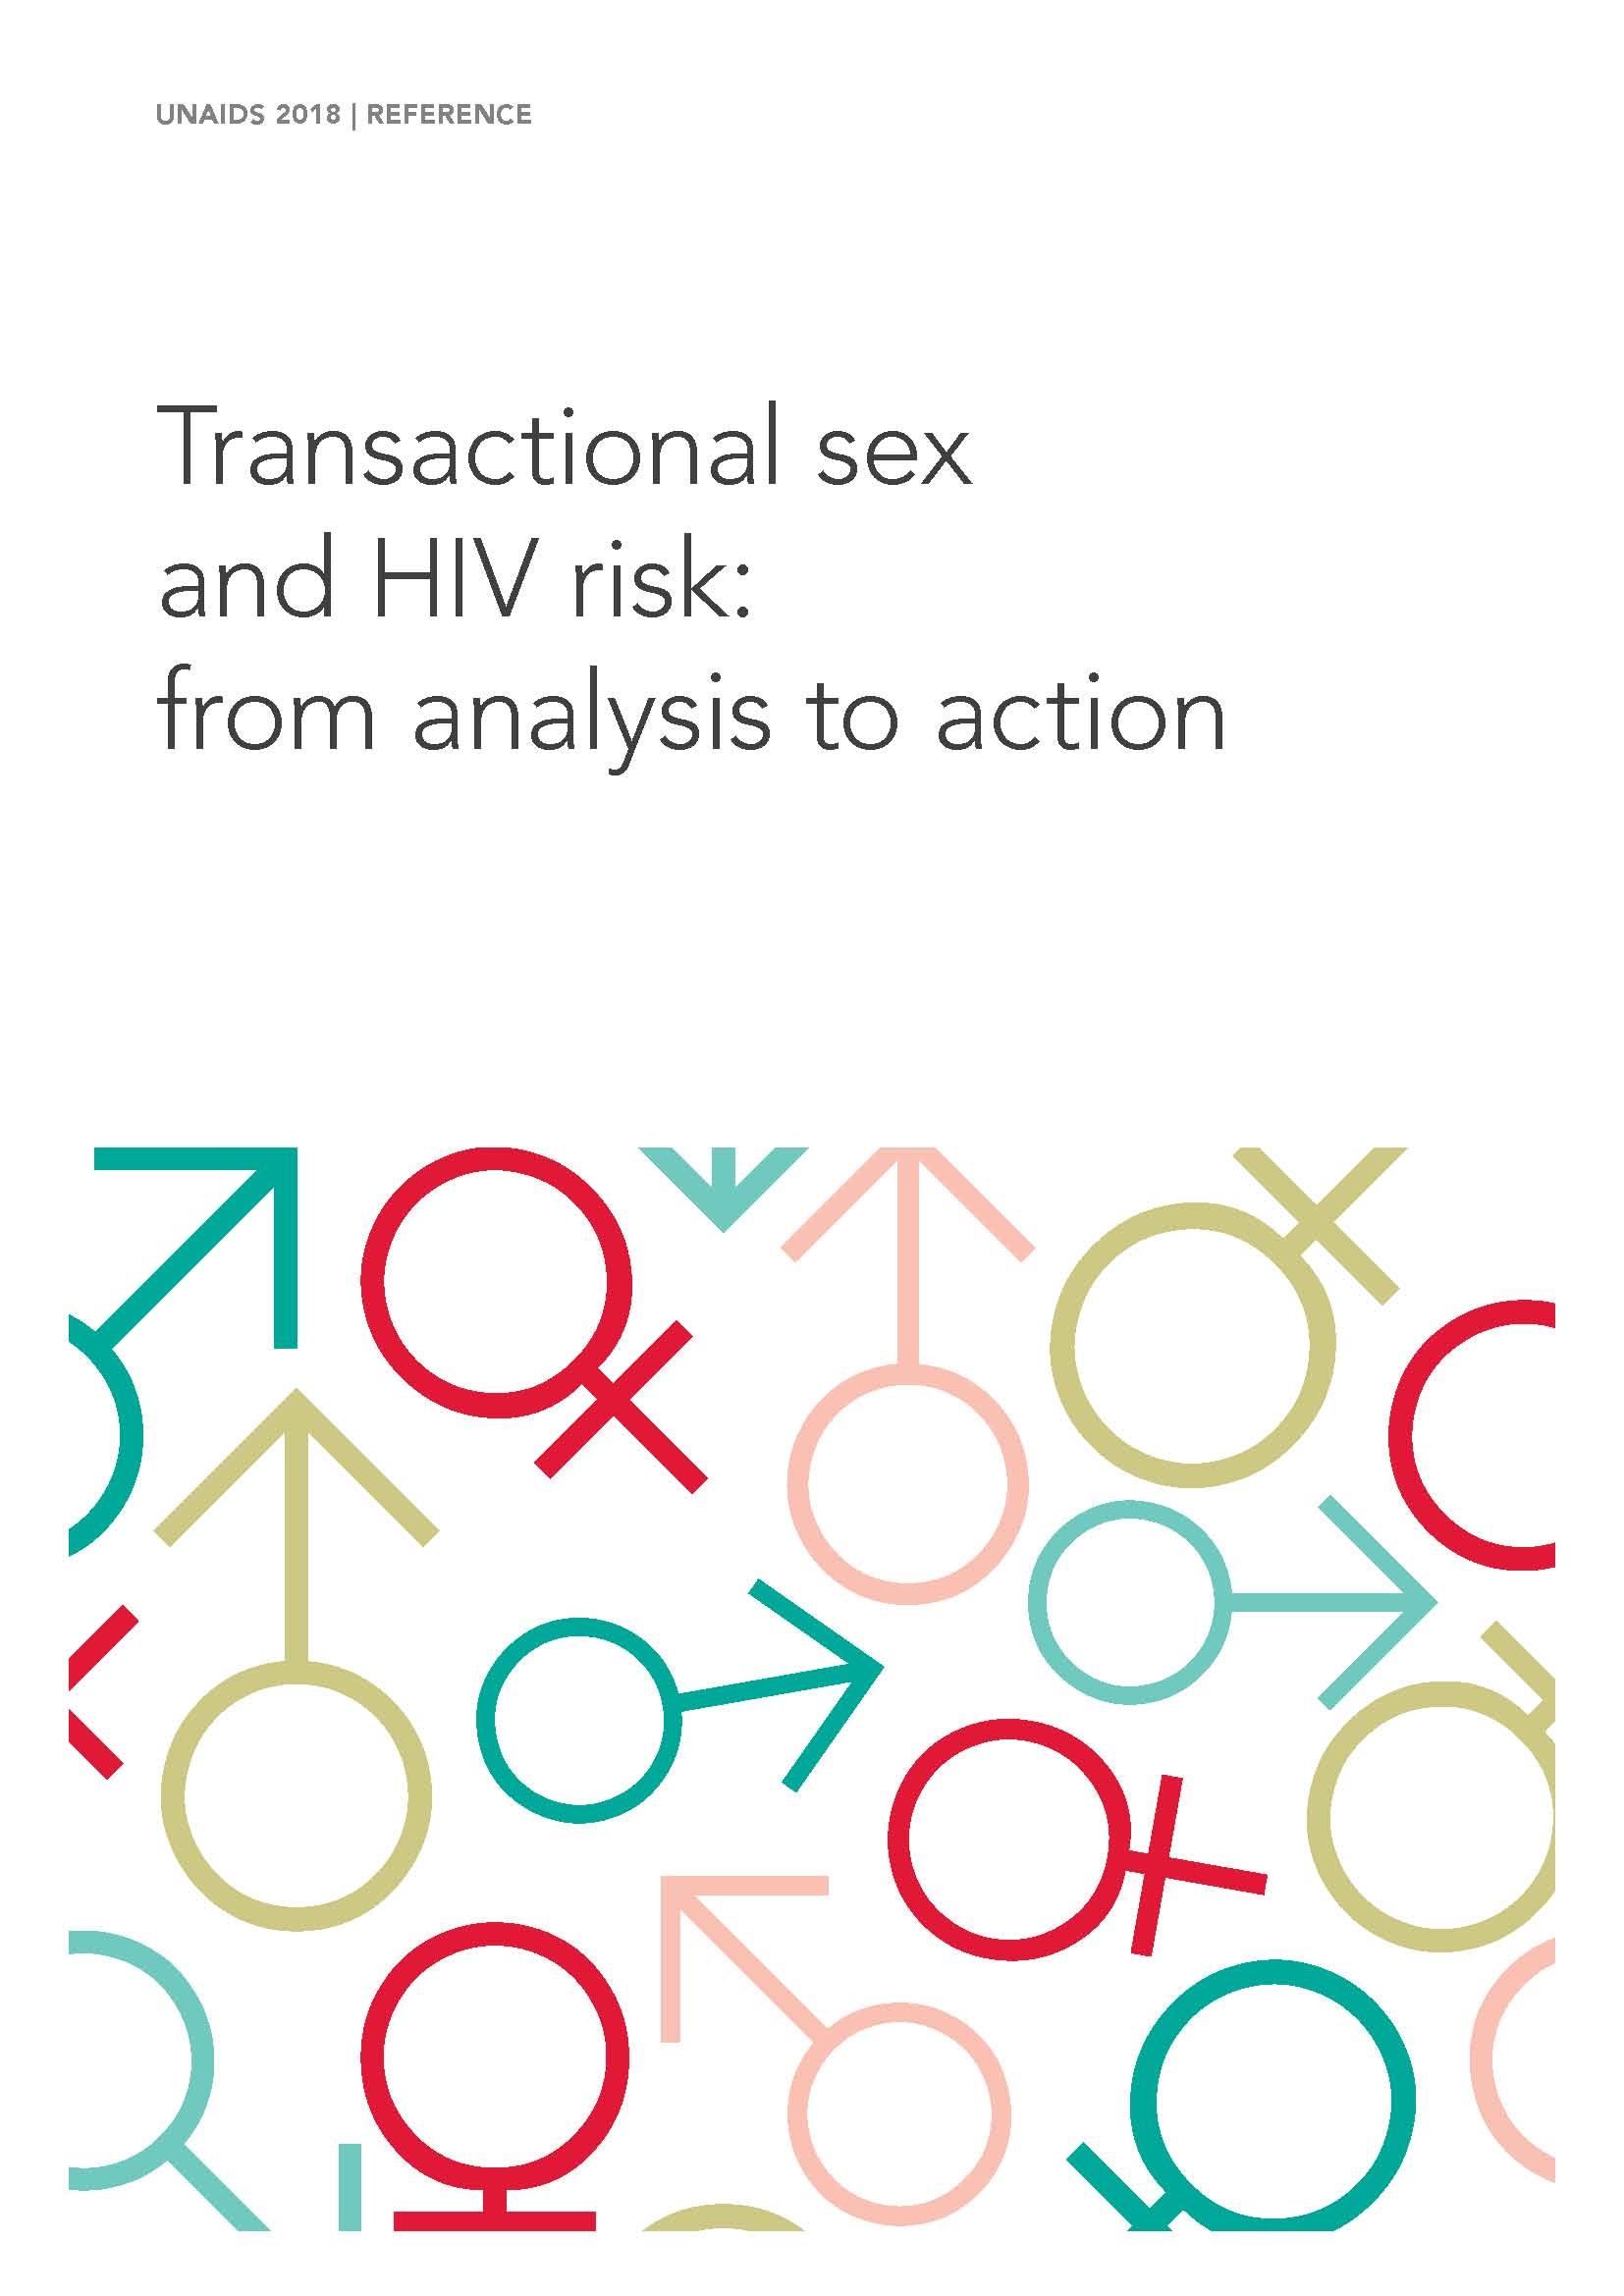 Transactional sex and HIV risk: from analysis to action, September 2018